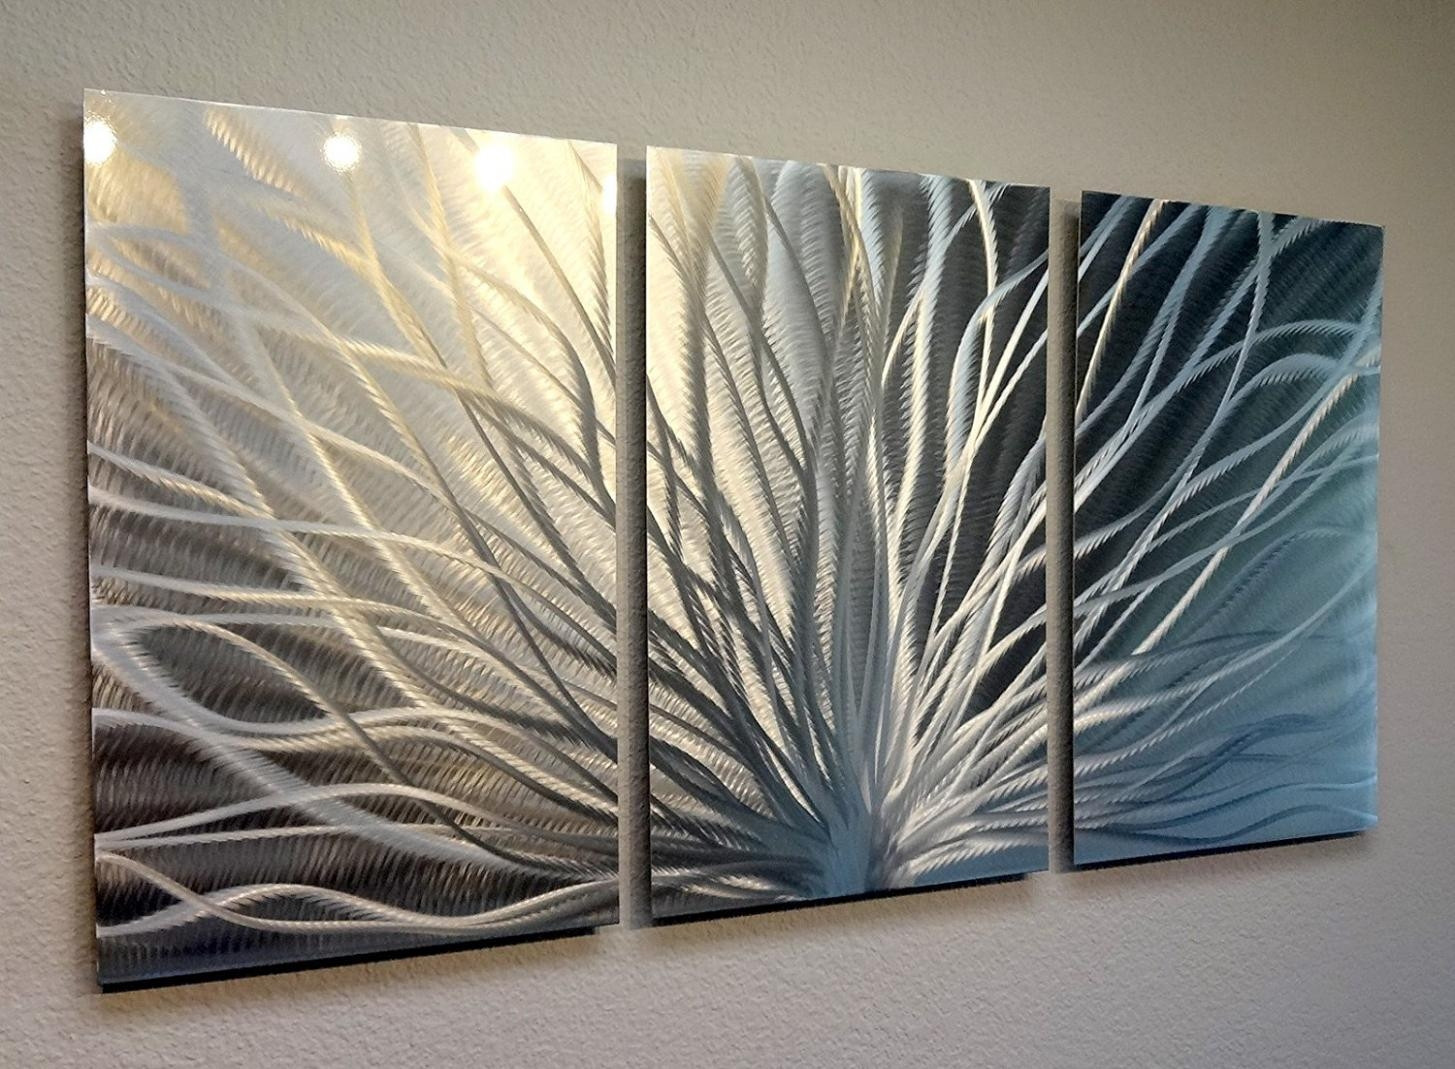 Best ideas about Metal Wall Art Amazon . Save or Pin Gallery of Abstract Wall Art Viewing 22 of 25 s Now.